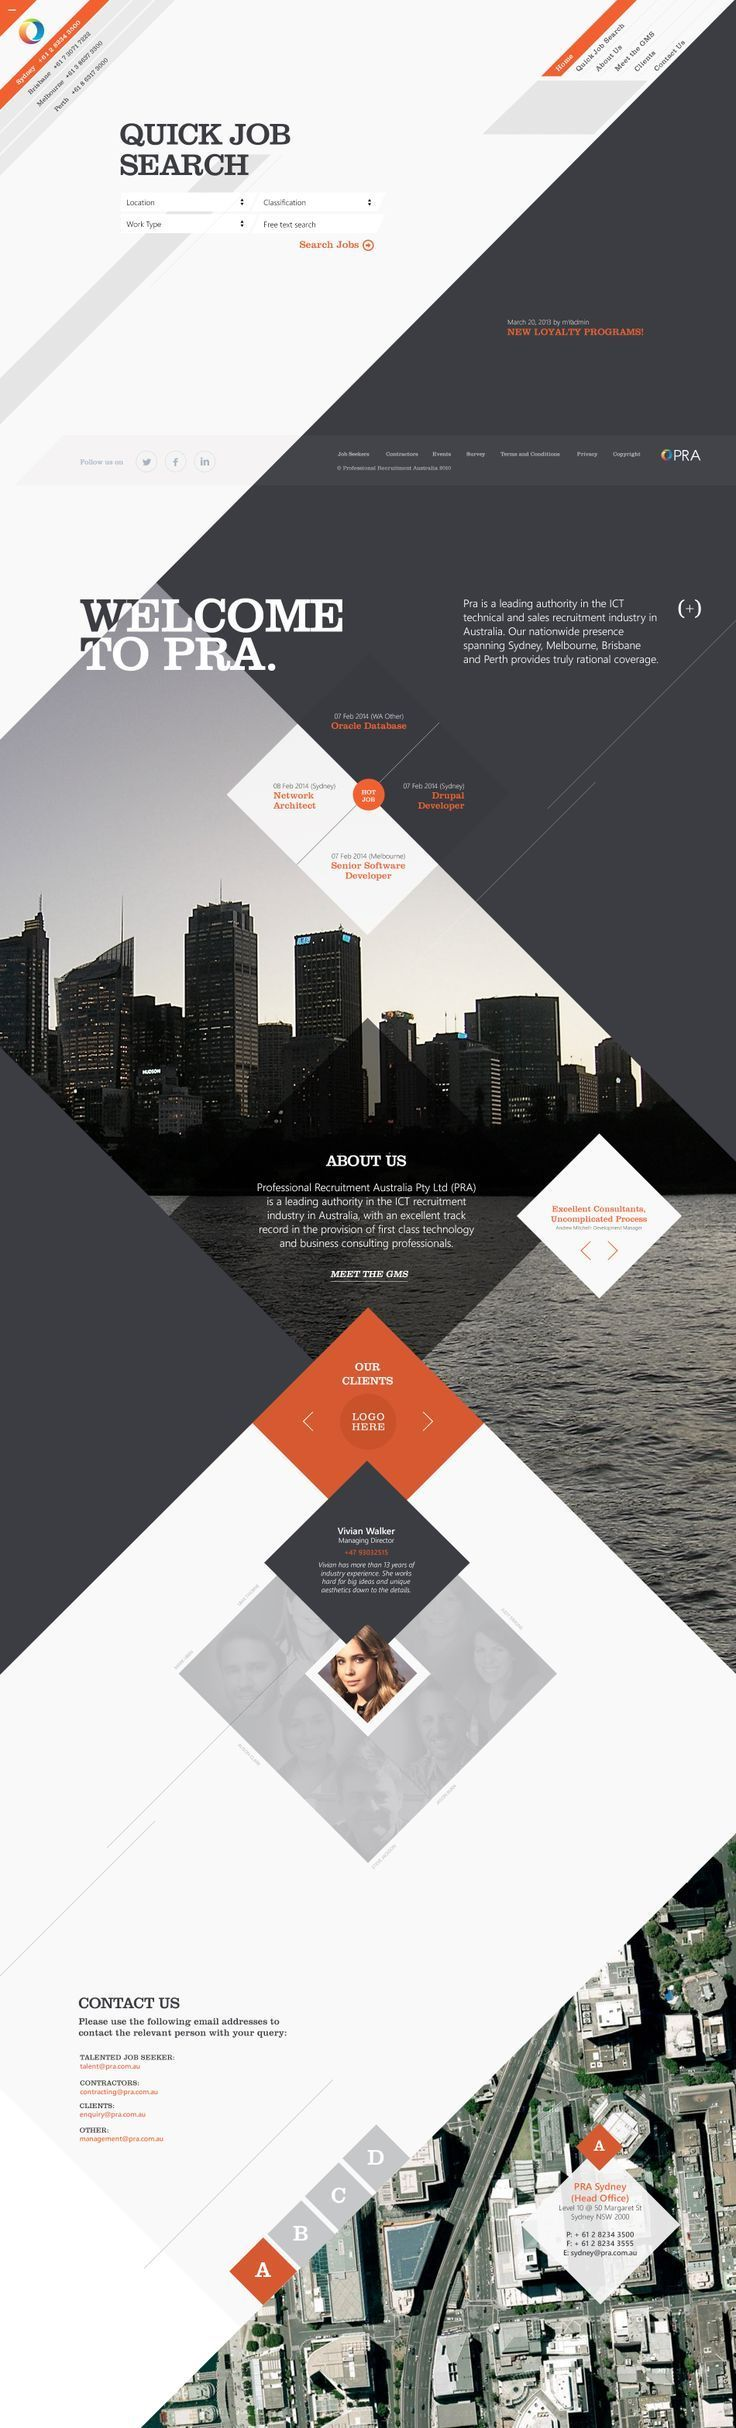 20+ Best Website Designs for Inspiration! Creative Stuff  Latest News & Trends on #webdesign | http://webworksagency.com